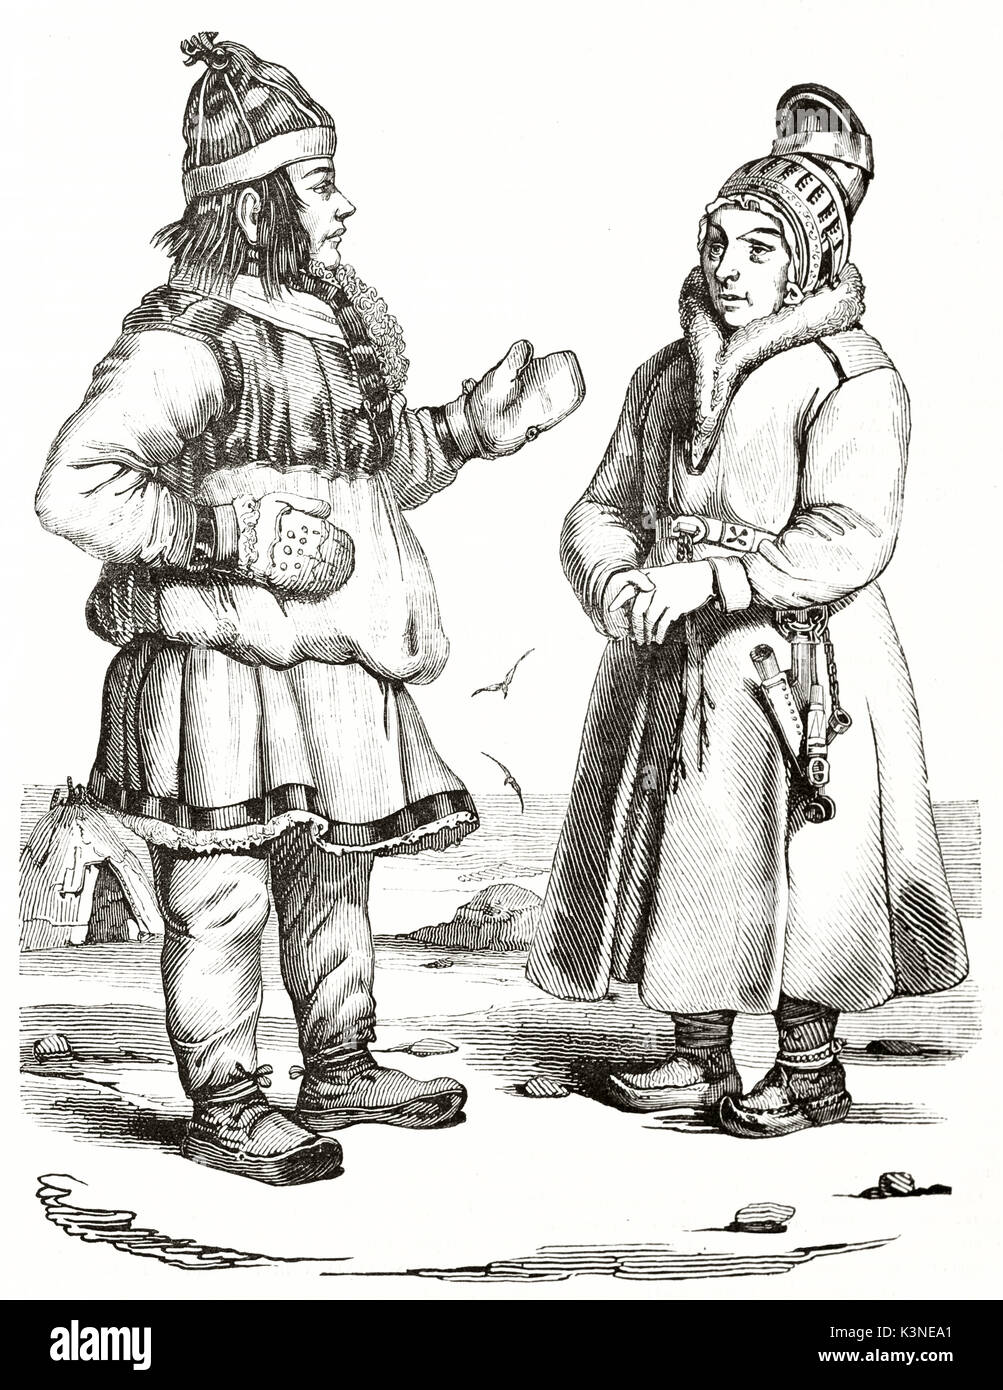 Old engraved illustration depicting two Norwegian Laplanders in their traditional costumes suitable for cold temperatures. Created by Wattier Andrew Best and Leloir, Magasin Pittoresque Paris 1839 - Stock Image